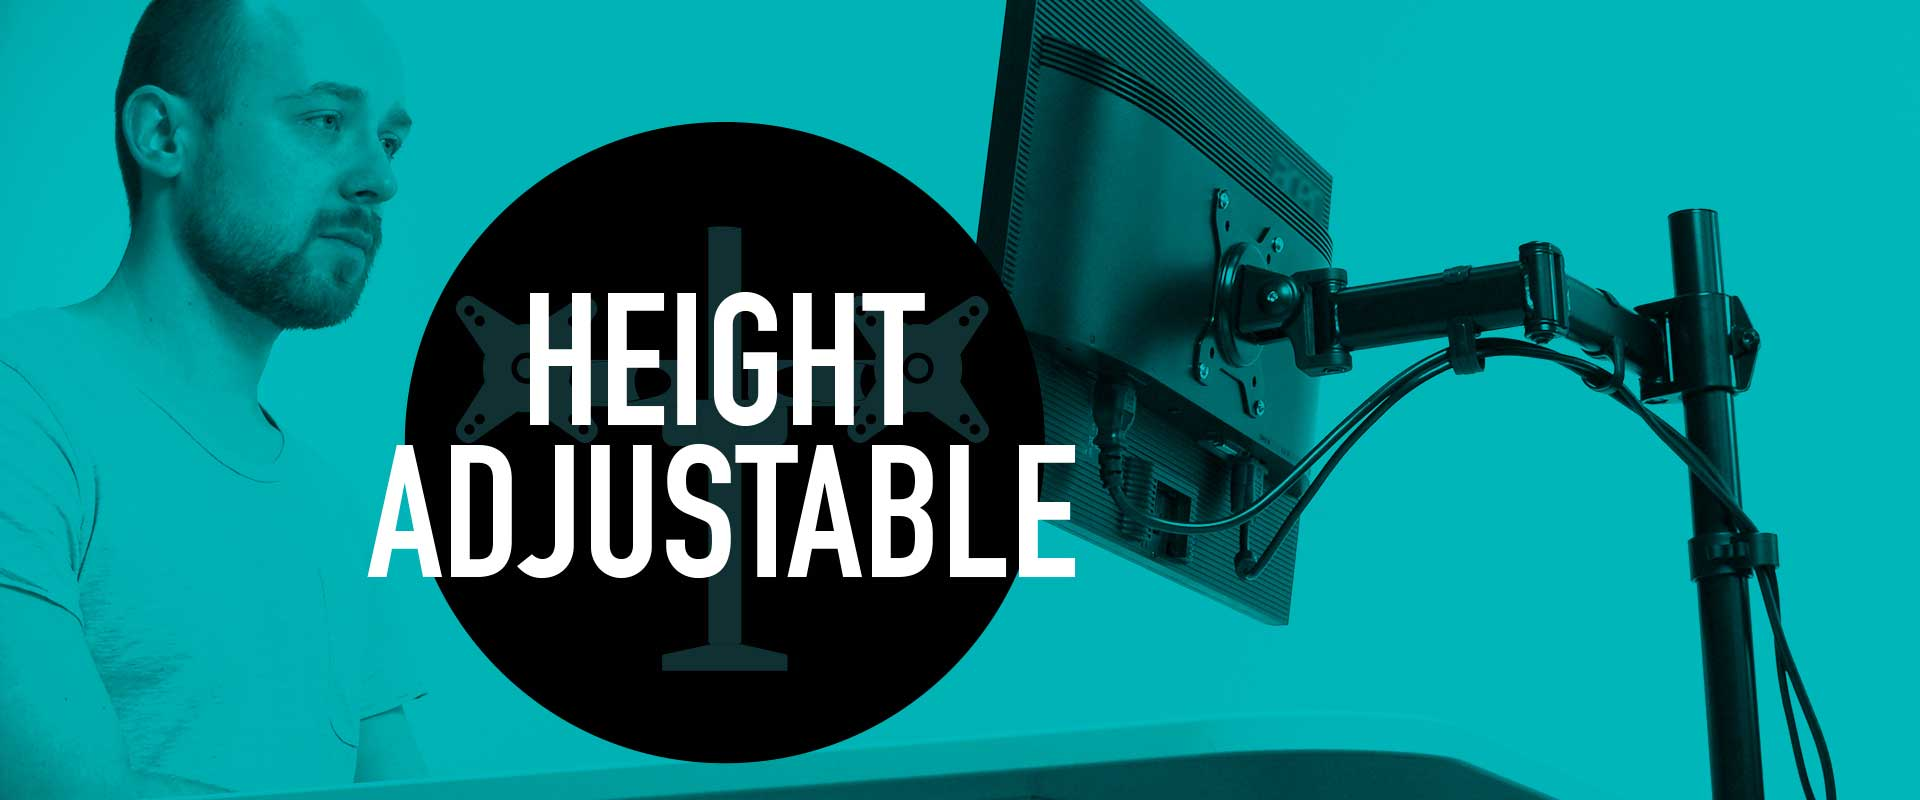 Adjustable in Height